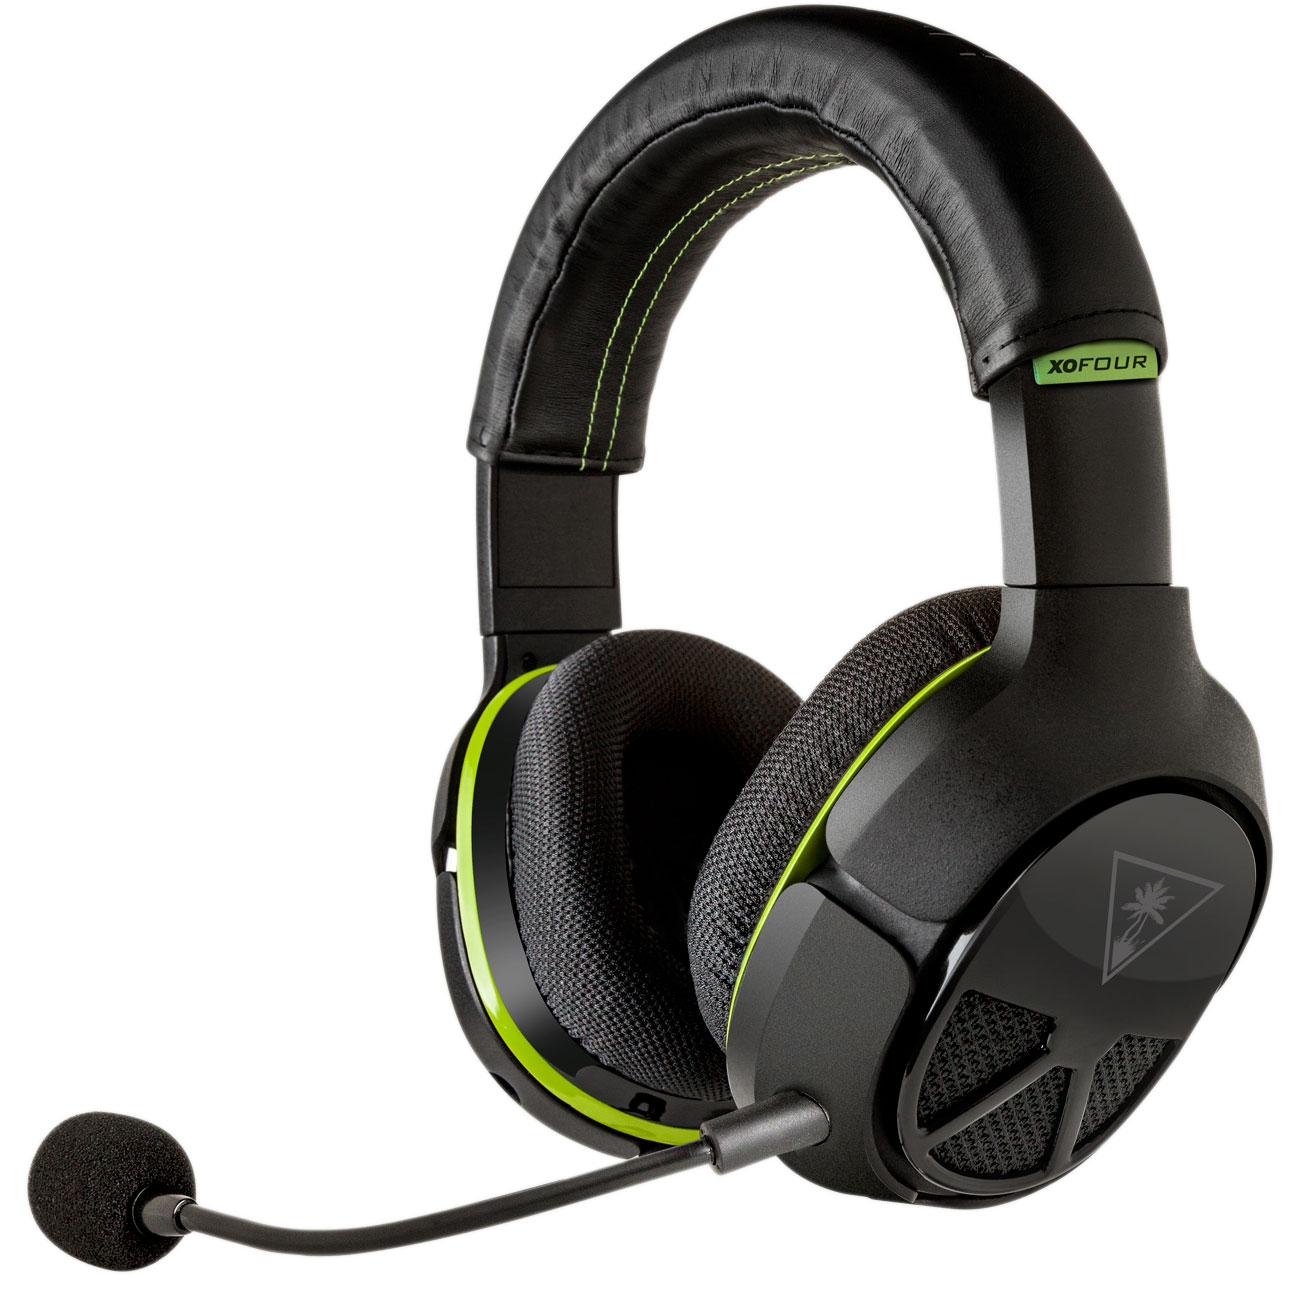 turtle beach ear force xo four xbox one tbs 2220 xo4 achat vente accessoires xbox one. Black Bedroom Furniture Sets. Home Design Ideas